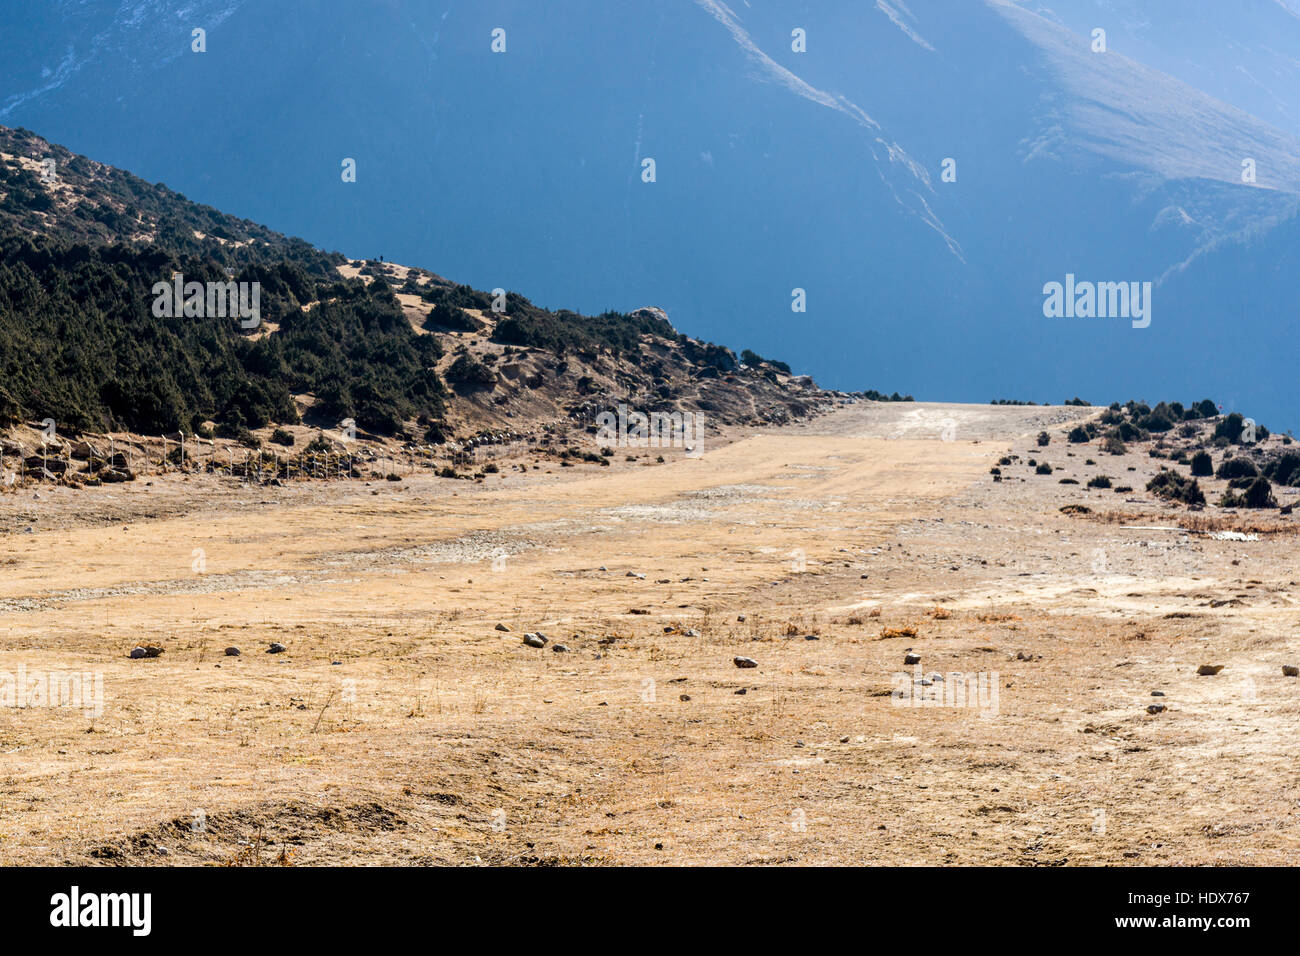 Khumjung Air Field, one of the highest and most dangerous Air Fields in Nepal - Stock Image